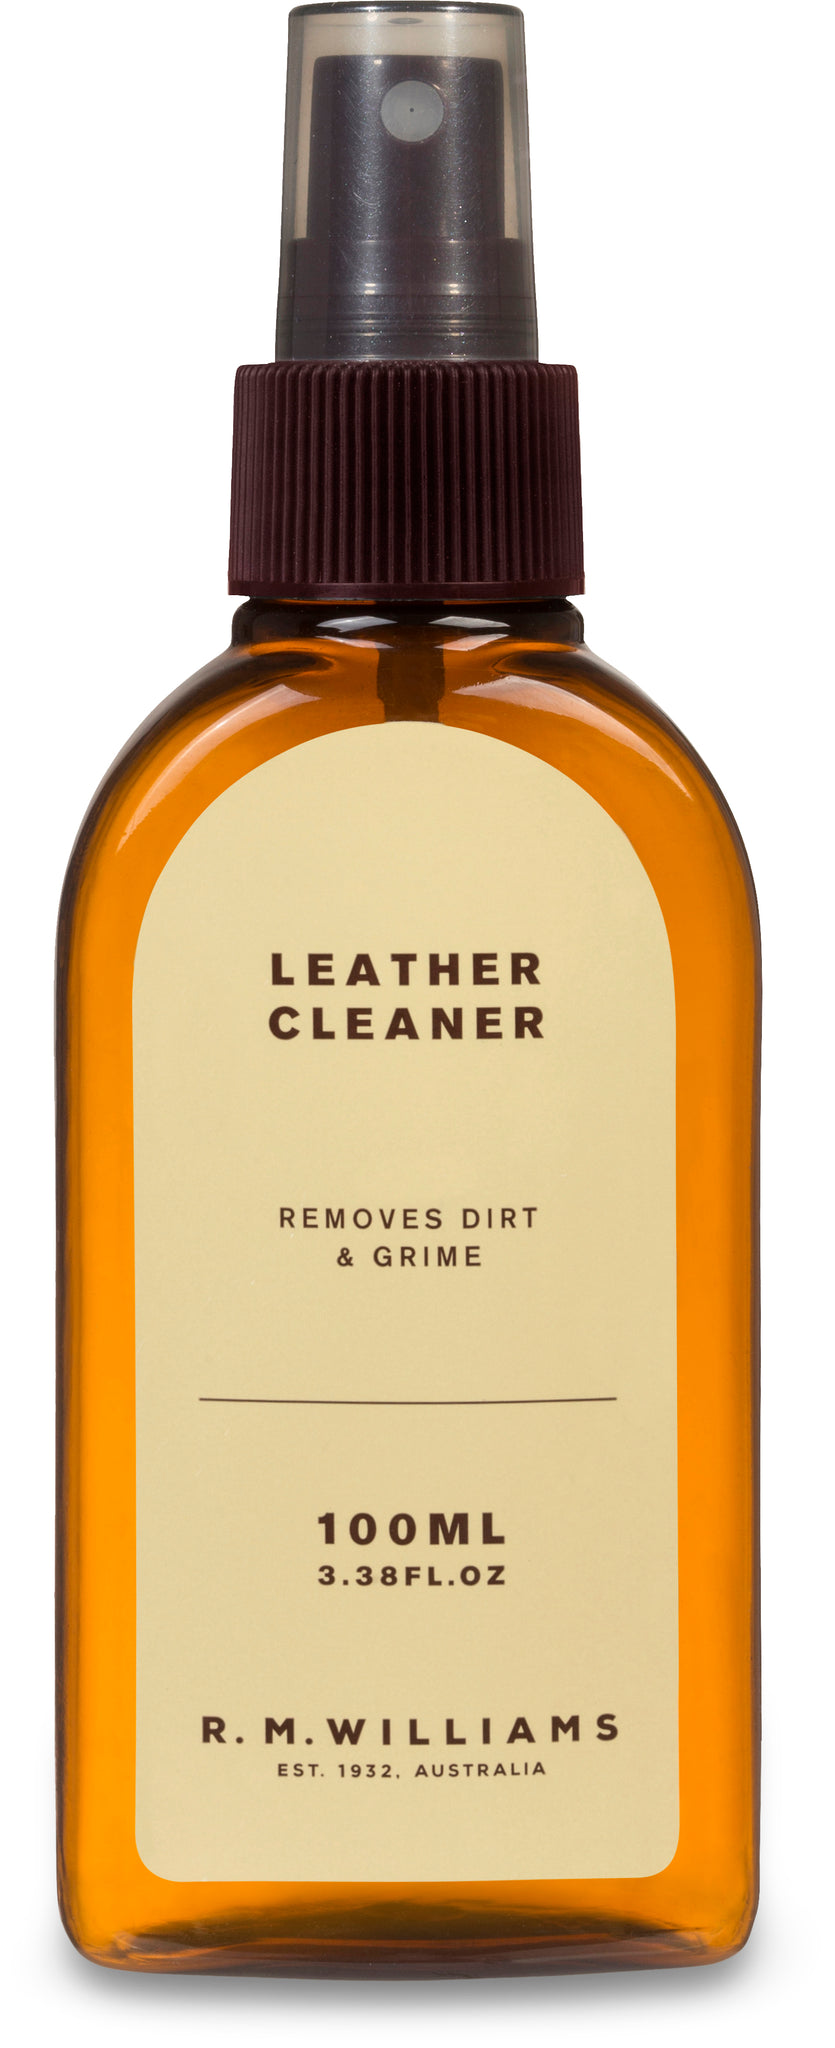 R.M.Williams Leather Cleaner 100ml